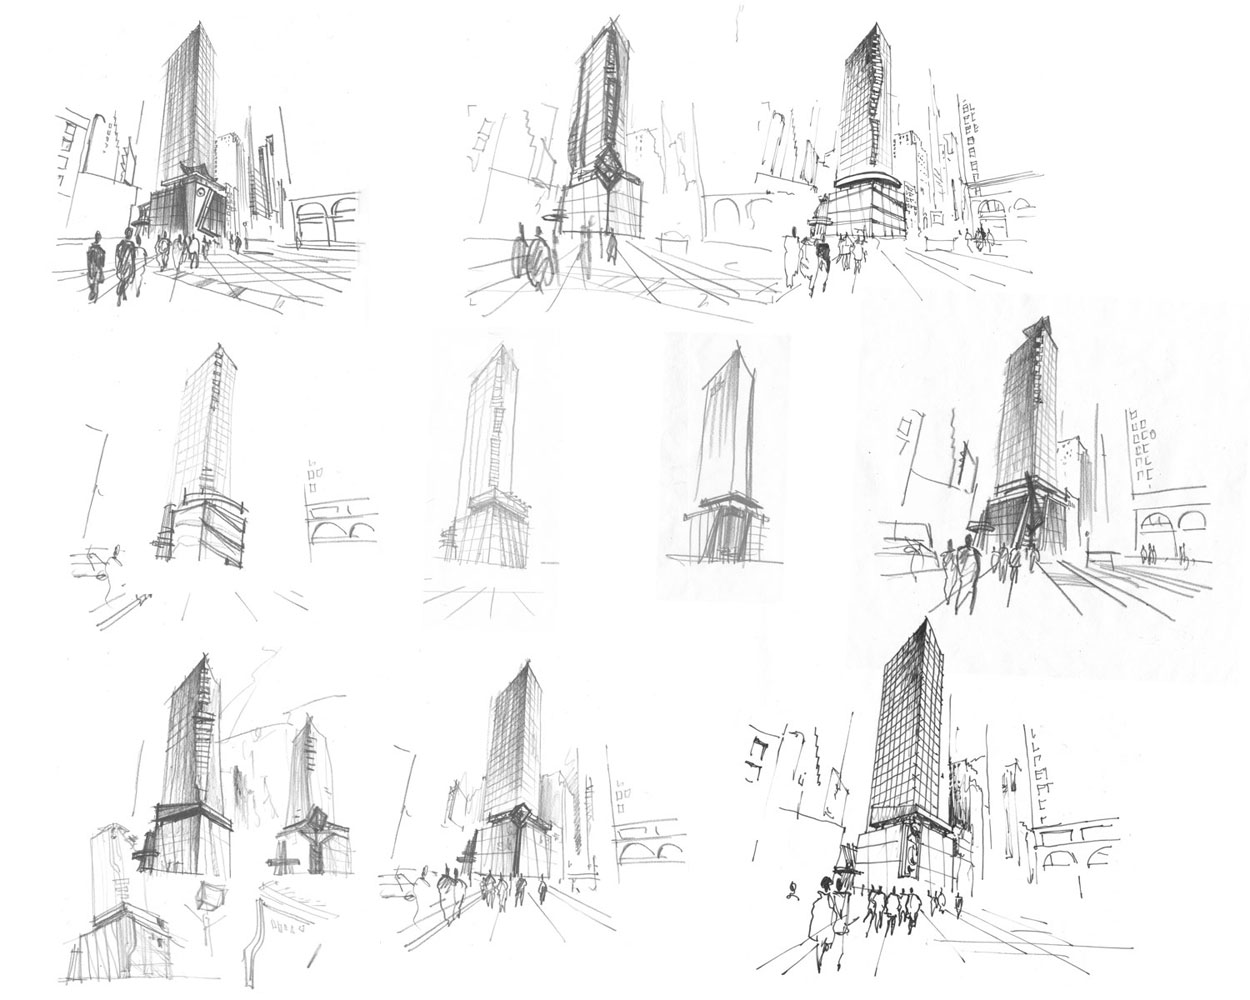 freehand rendering architectural concept sketches pencil hotel and retail space by Shalumov